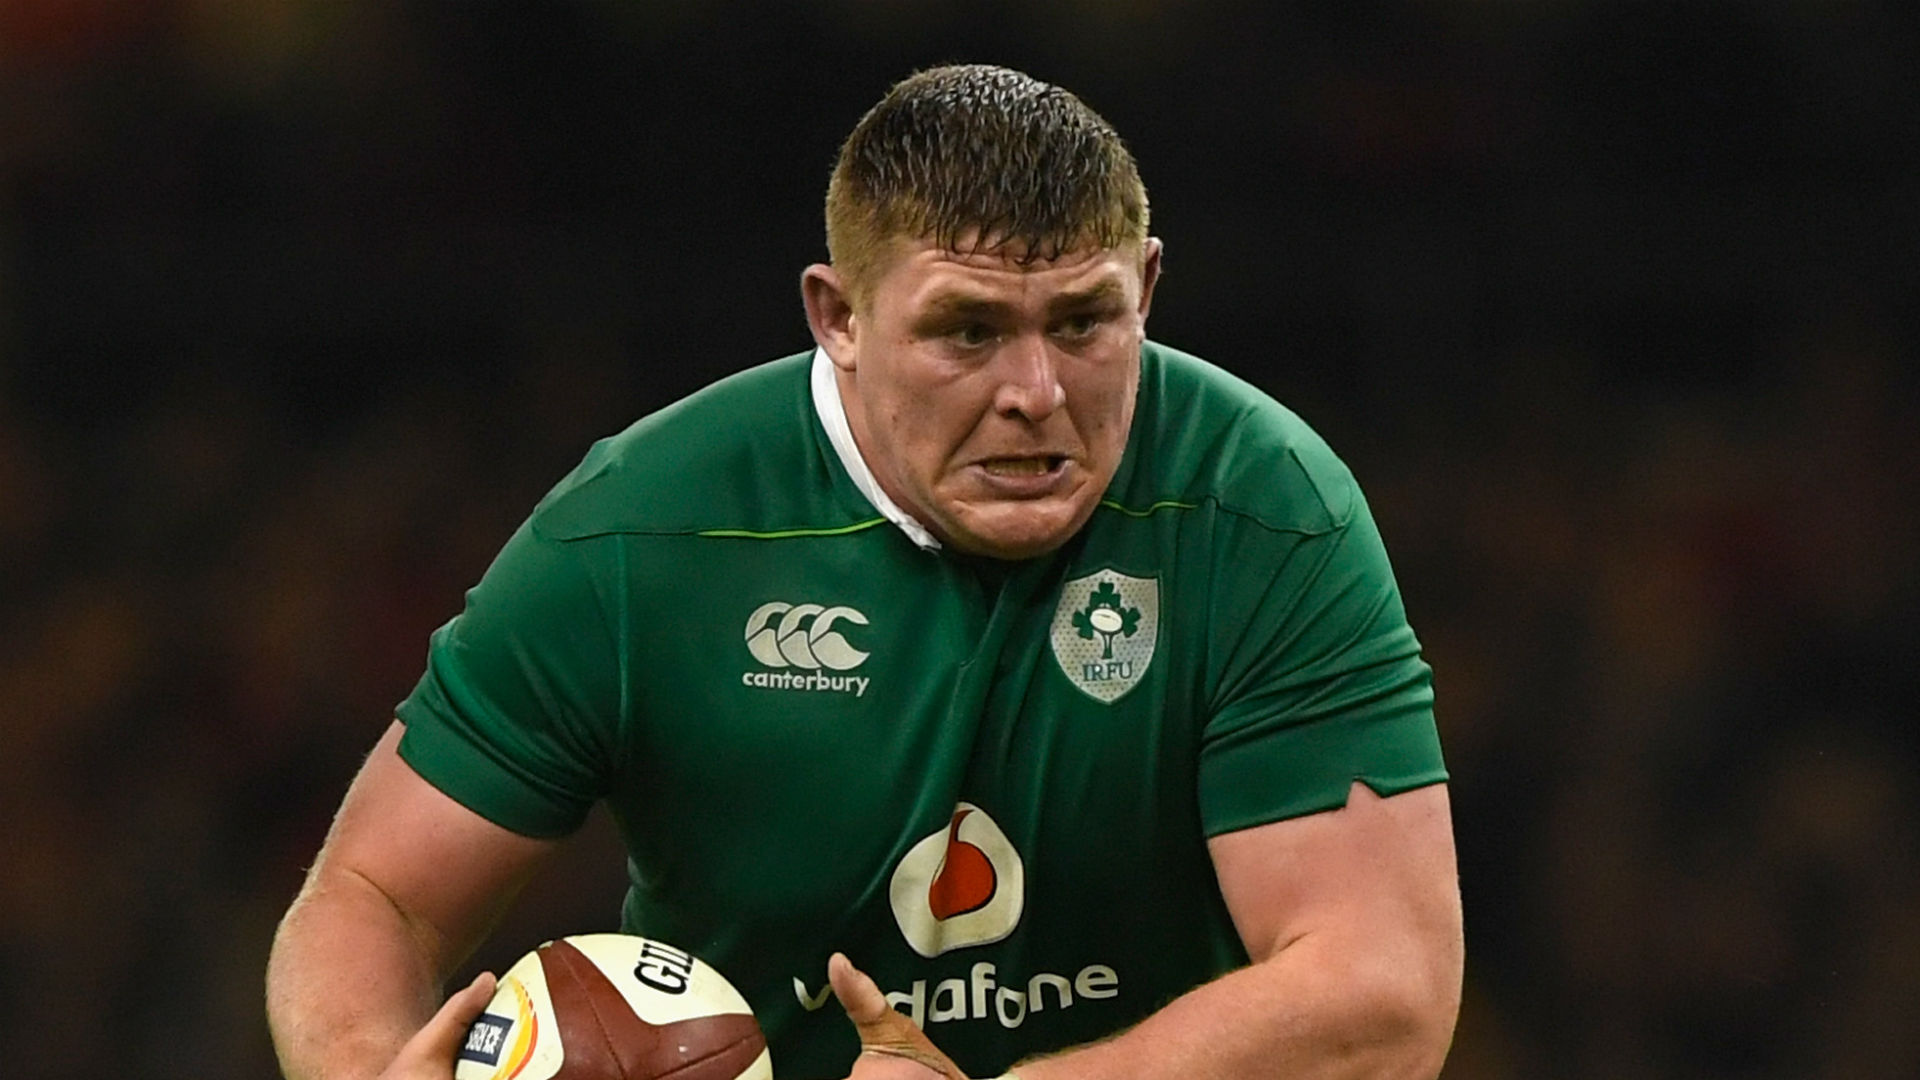 Ireland and Leinster prop Furlong signs new contract